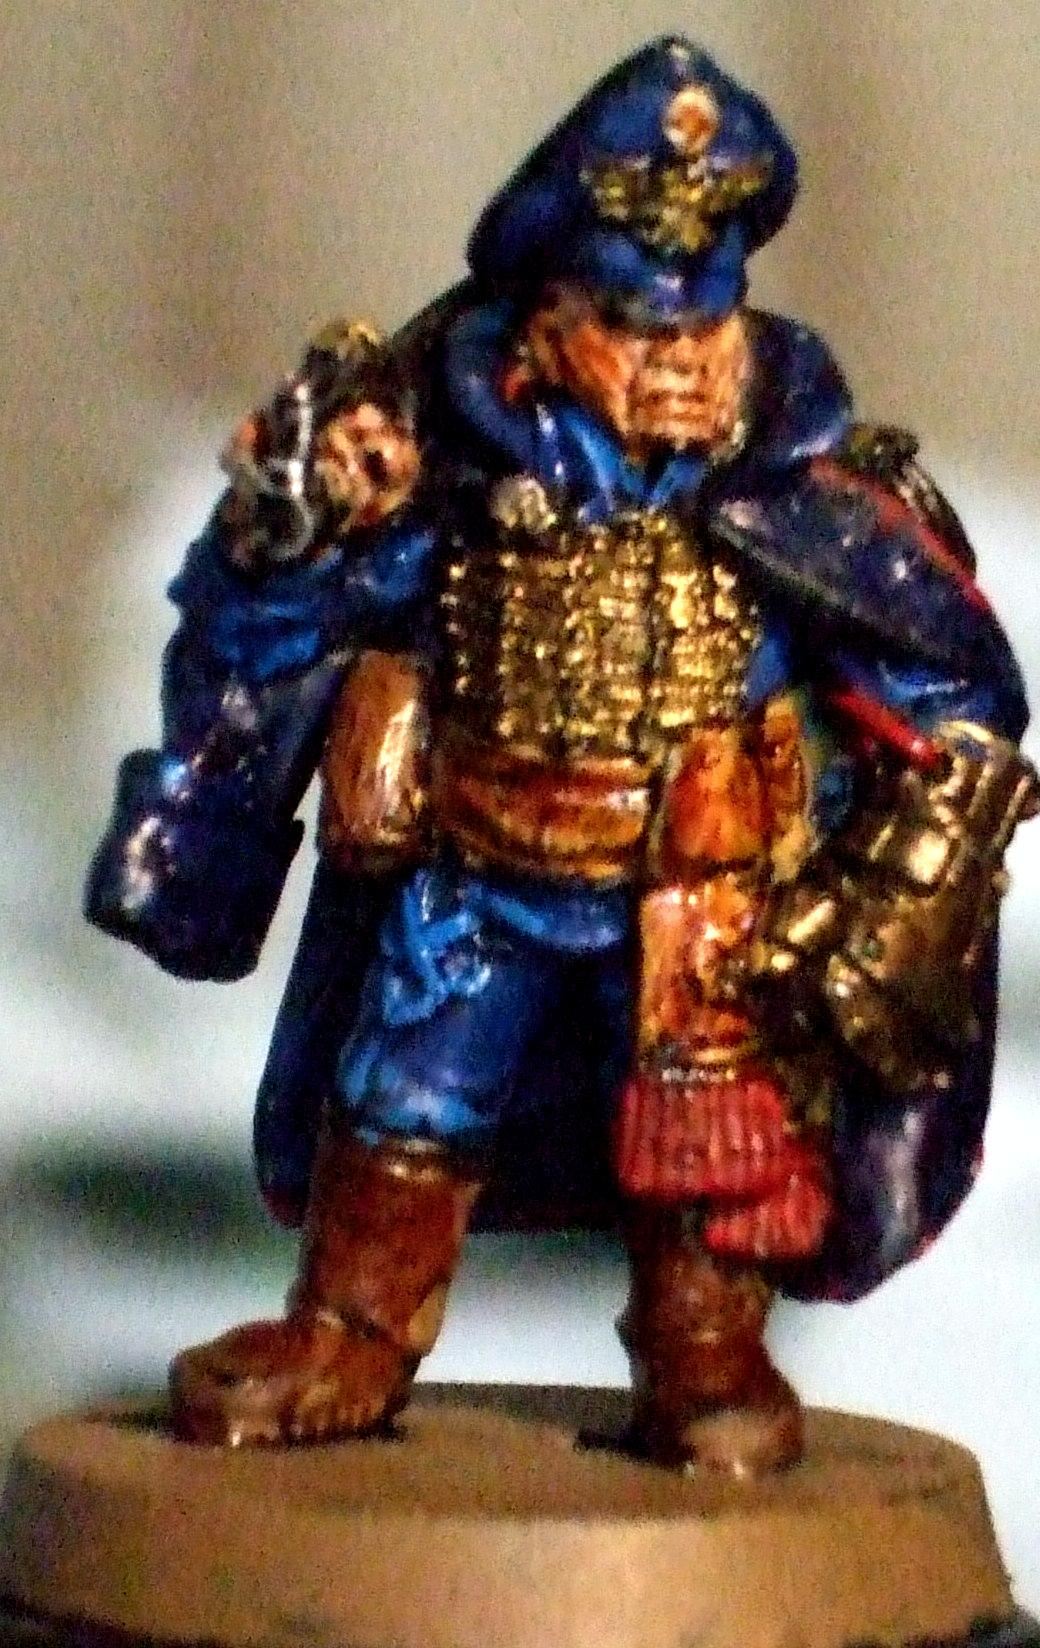 Blurred Photo, Classic, Commissar, Imperial Guard, Old